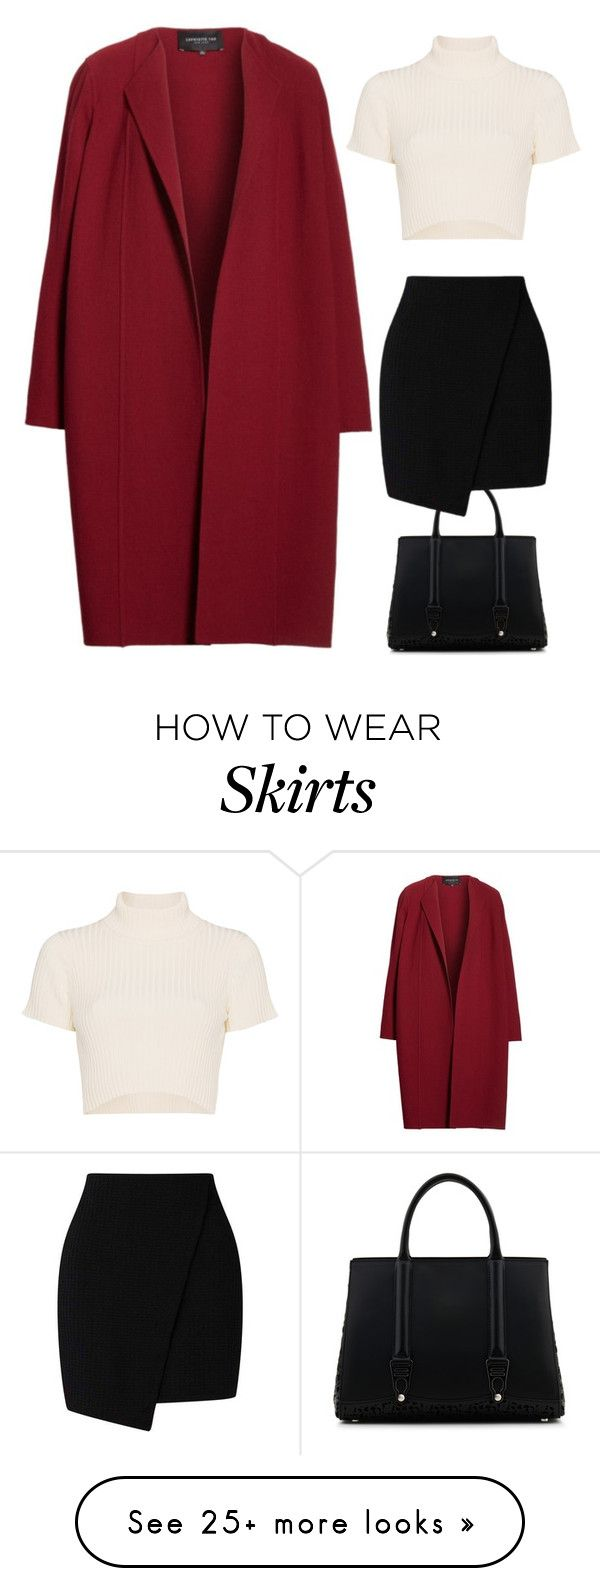 """"" by xonfident on Polyvore featuring La Perla, Lafayette 148 New York, Staud and Miss Selfridge"